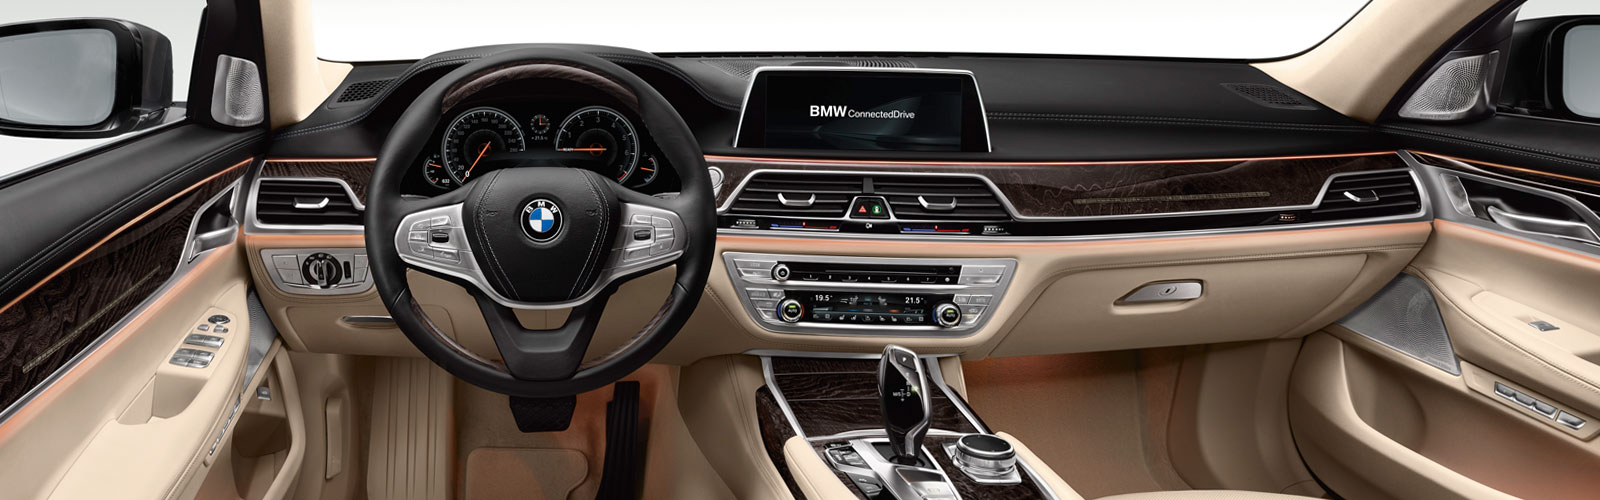 2018 bmw m5 interior.  bmw bmw x7 styling and 2018 bmw m5 interior